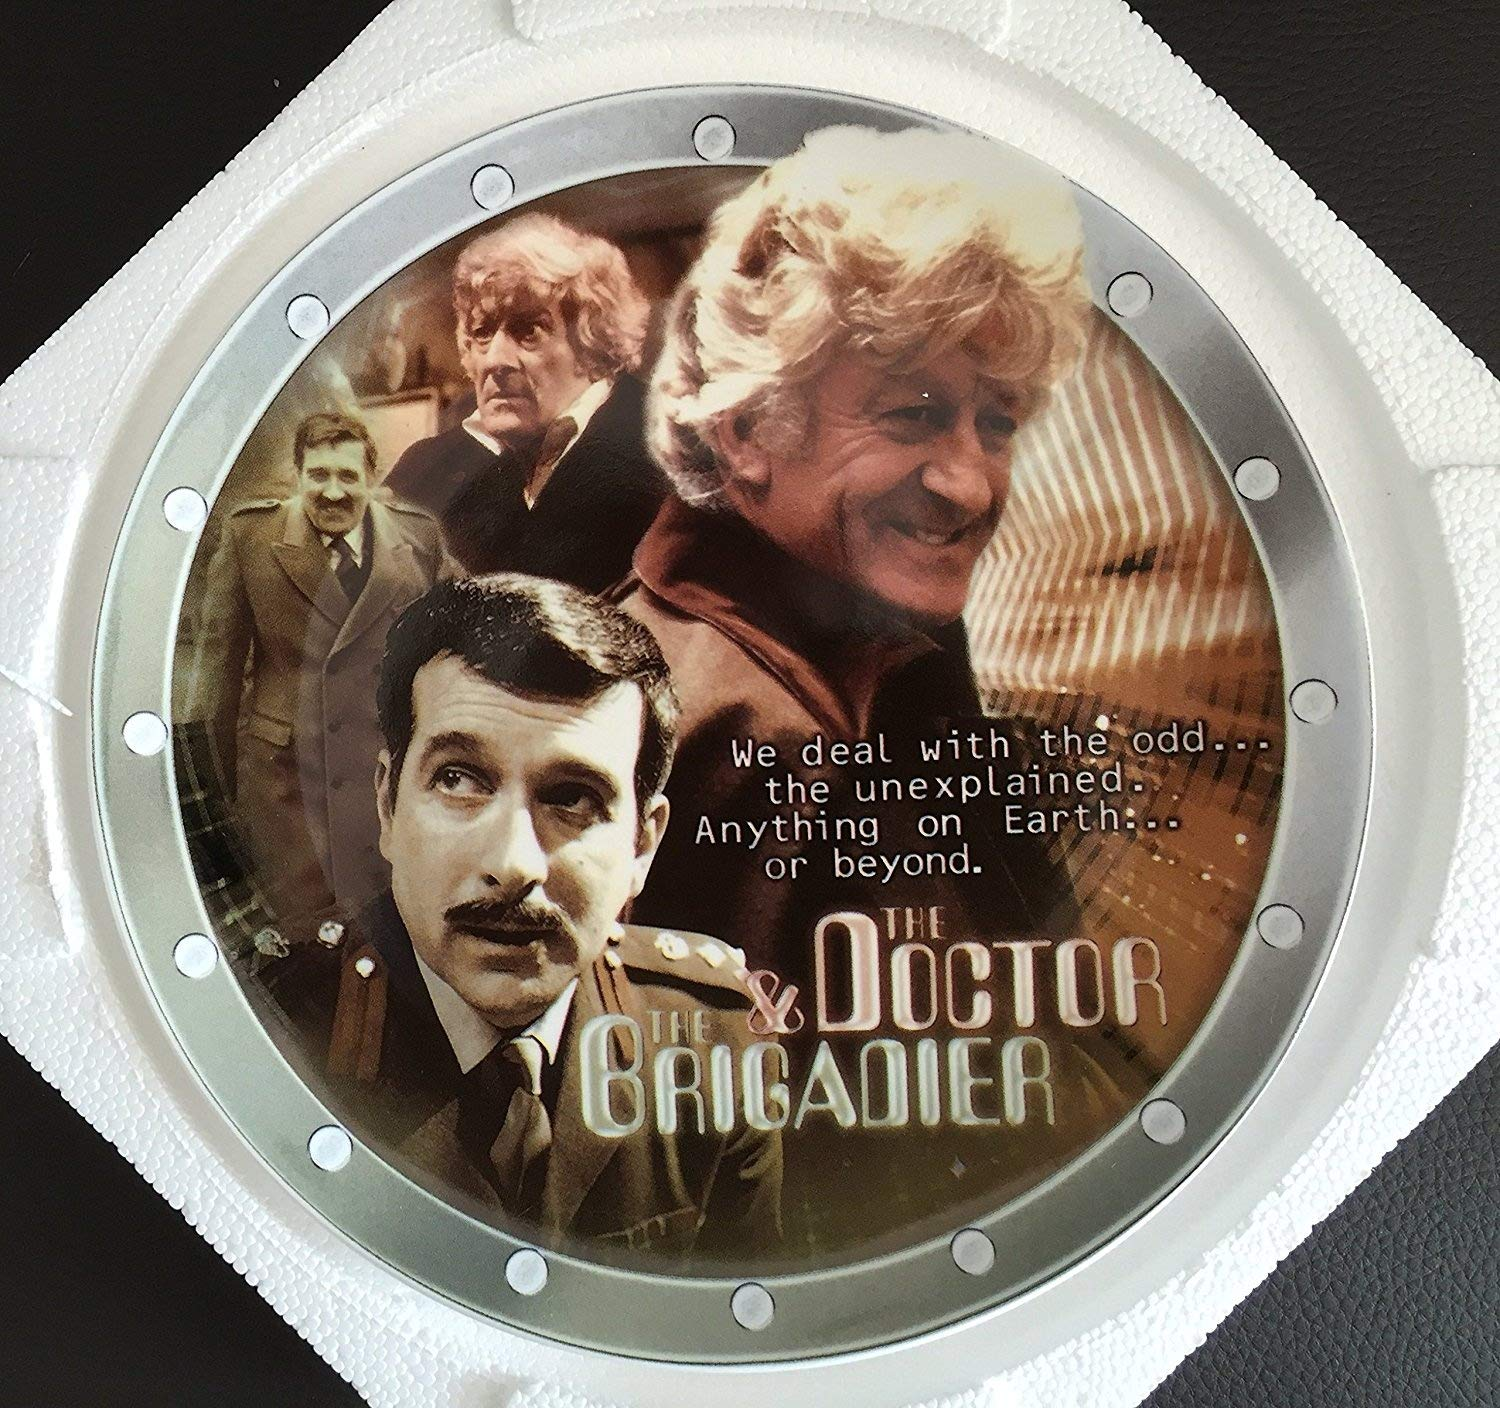 DOCTOR WHO Vintage 2004 The Third Doctor And The Brigadier 40th Anniversary Limited Edition Collectors Plate By Cards Inc